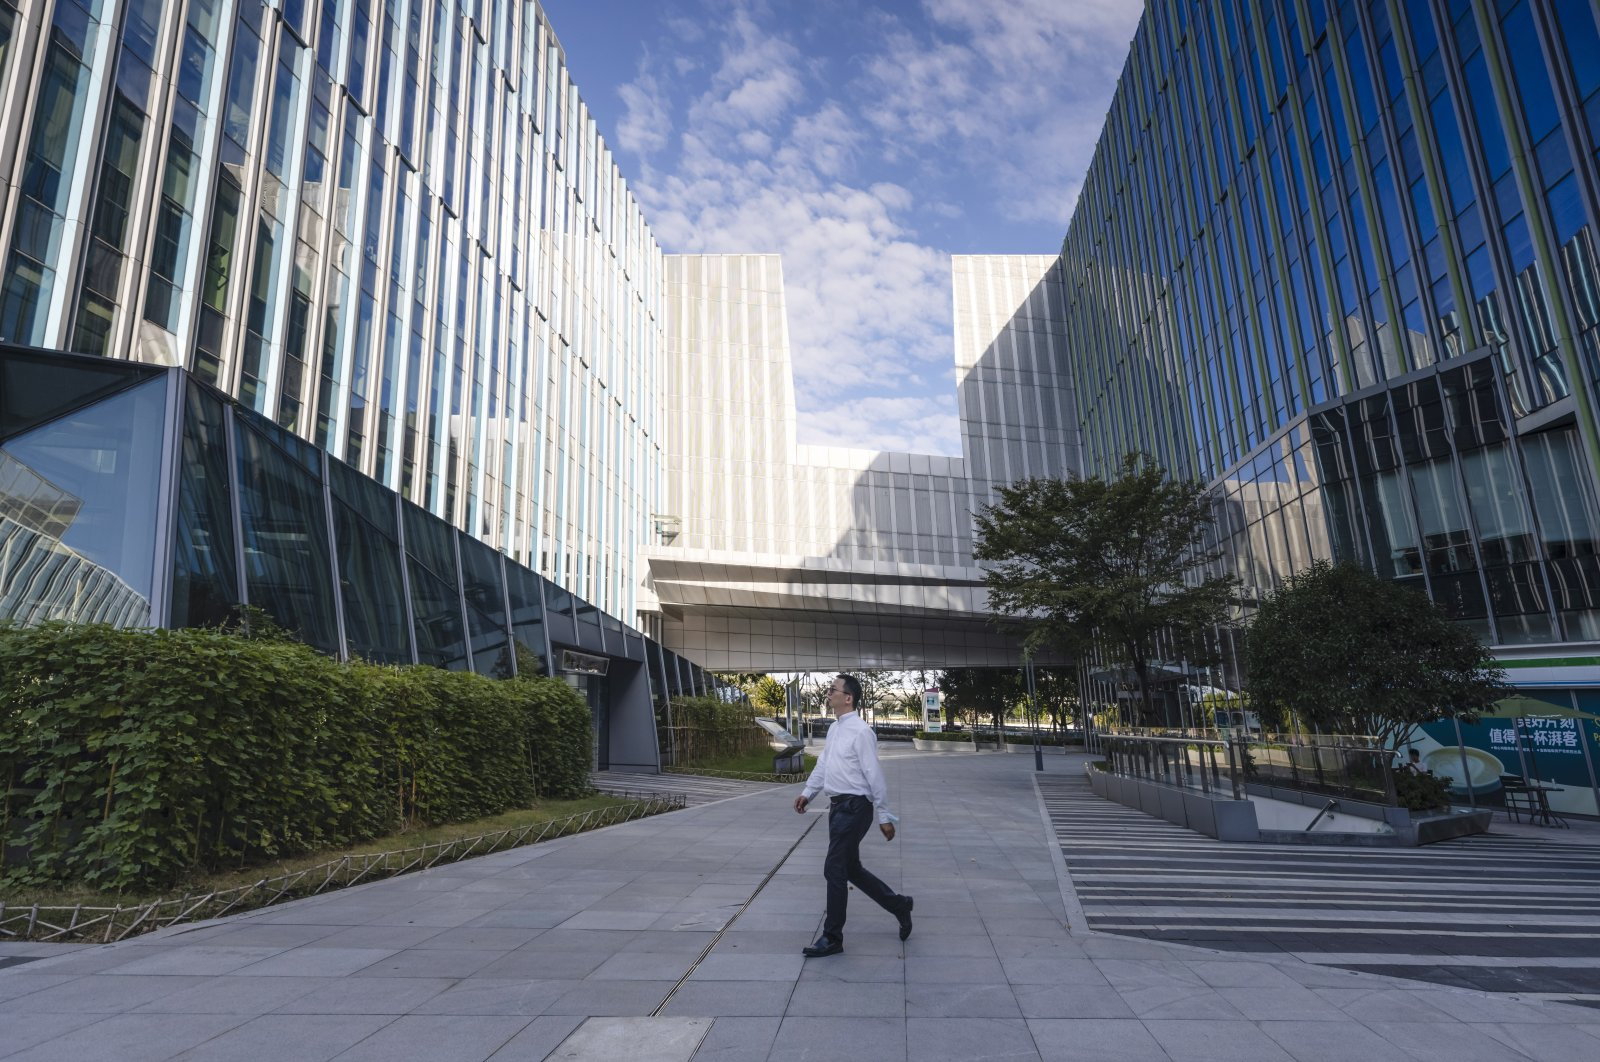 A man walks in front of the Sinic Holdings Shanghai headquarters building in Shanghai, China, Oct. 6, 2021. (EPA Photo)